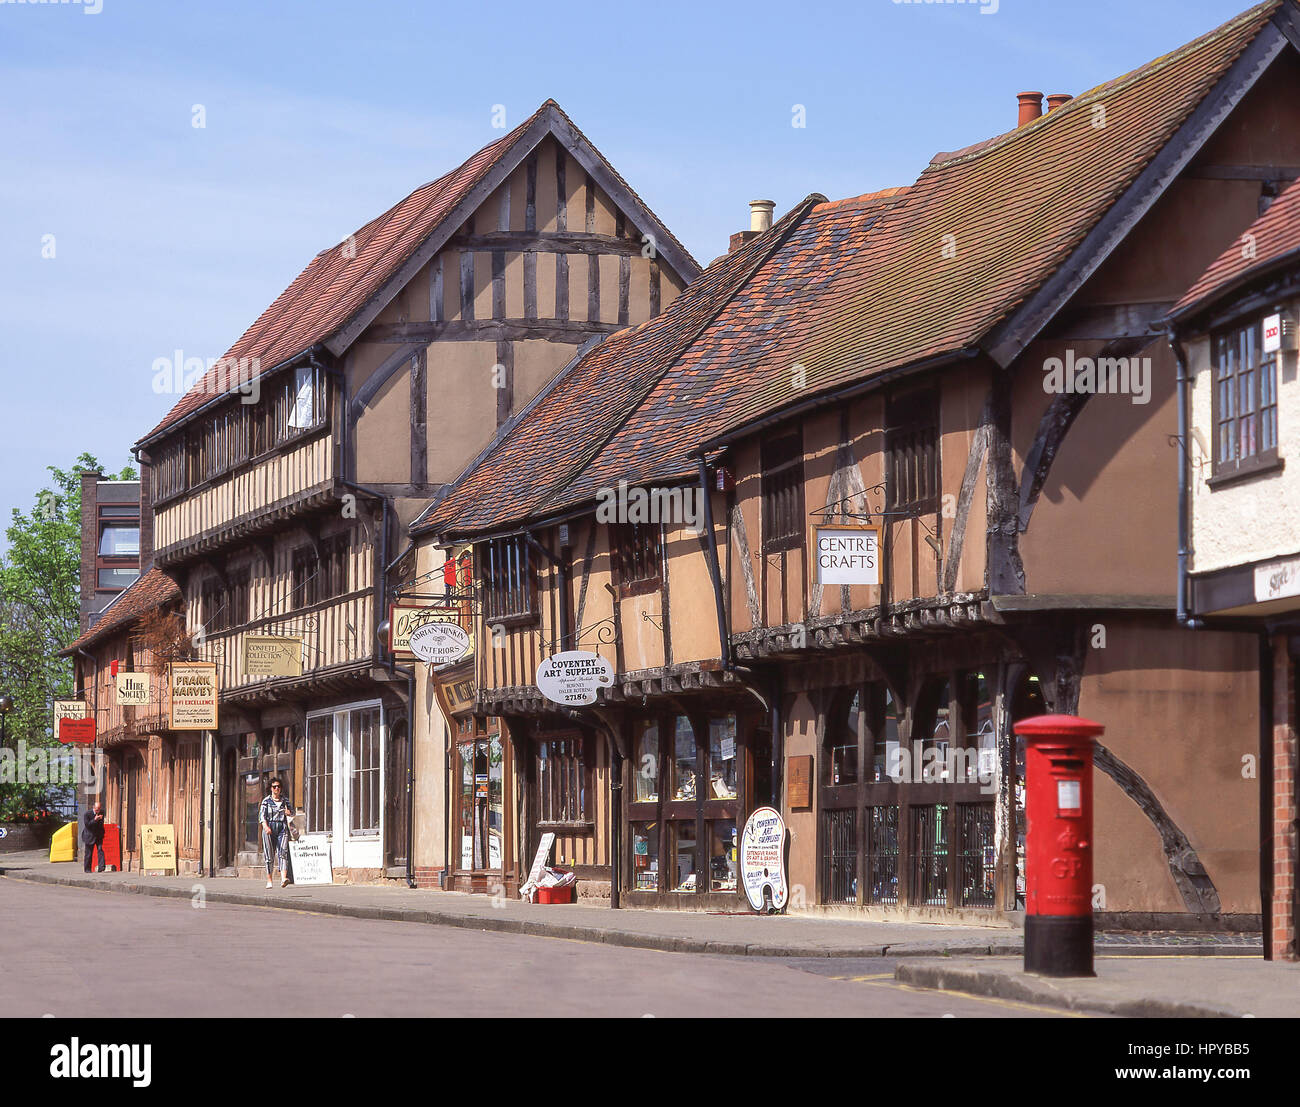 14th century timber-framed buildings, Spon Street, Coventry, West Midlands, England, United Kingdom - Stock Image